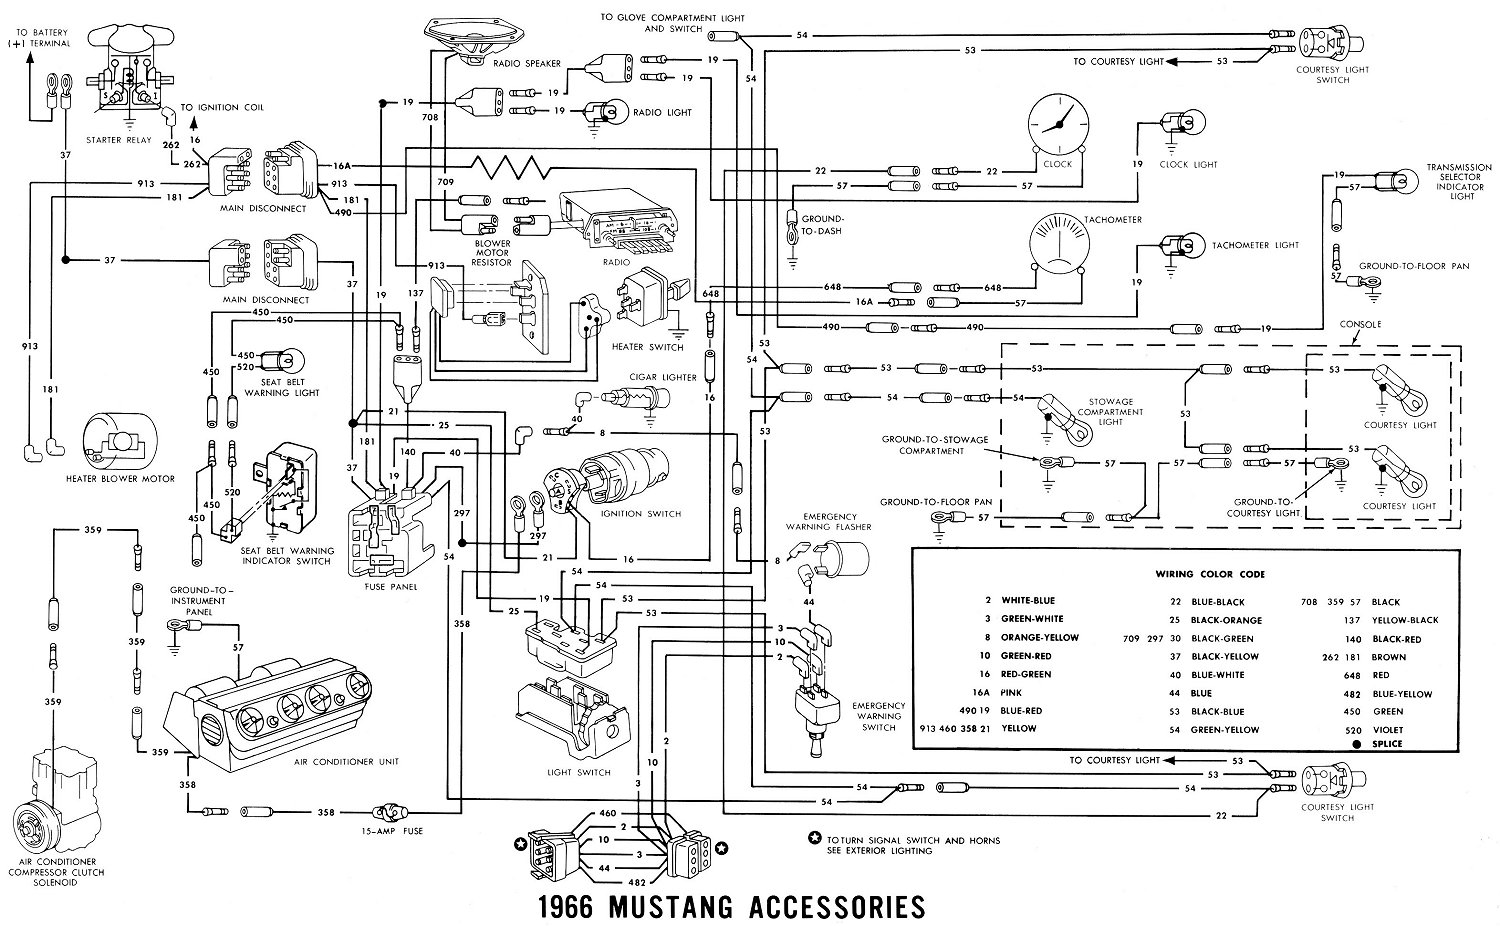 1966 mustang wiring diagrams average joe restoration 1966 Mustang Manual Transmission Console